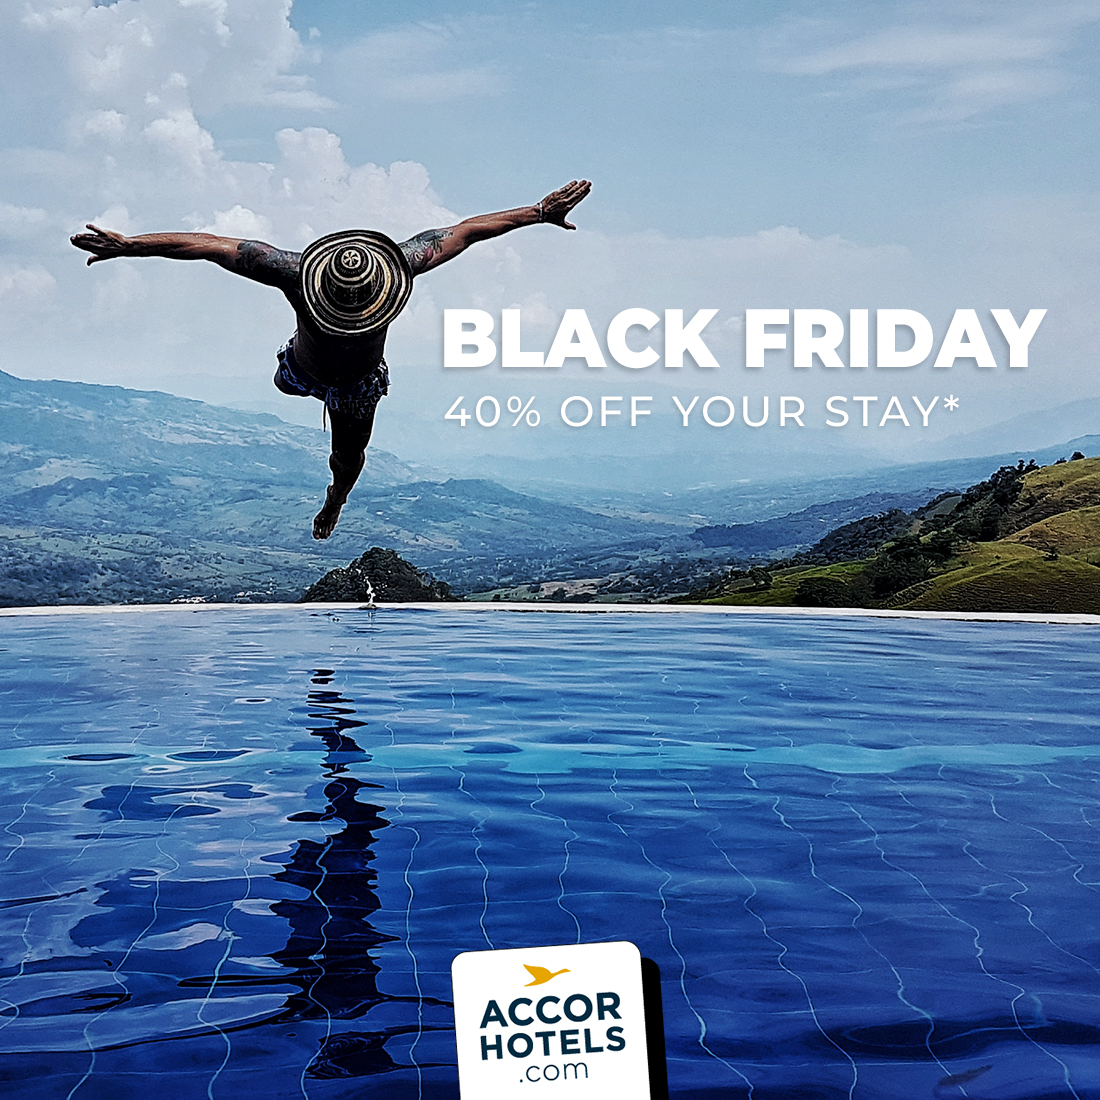 ⚡️BLACK FRIDAY, members get a 40% discount* on stays between 1 Jan - 30 Apr 2020 across Asia Pacific! Accor Plus members receive 10% on top. Offer valid until 2nd Dec 2019 Discover more >>https://t.co/STpOTyNMi9 #BlackFriday2019 https://t.co/C4qNEf4ymk